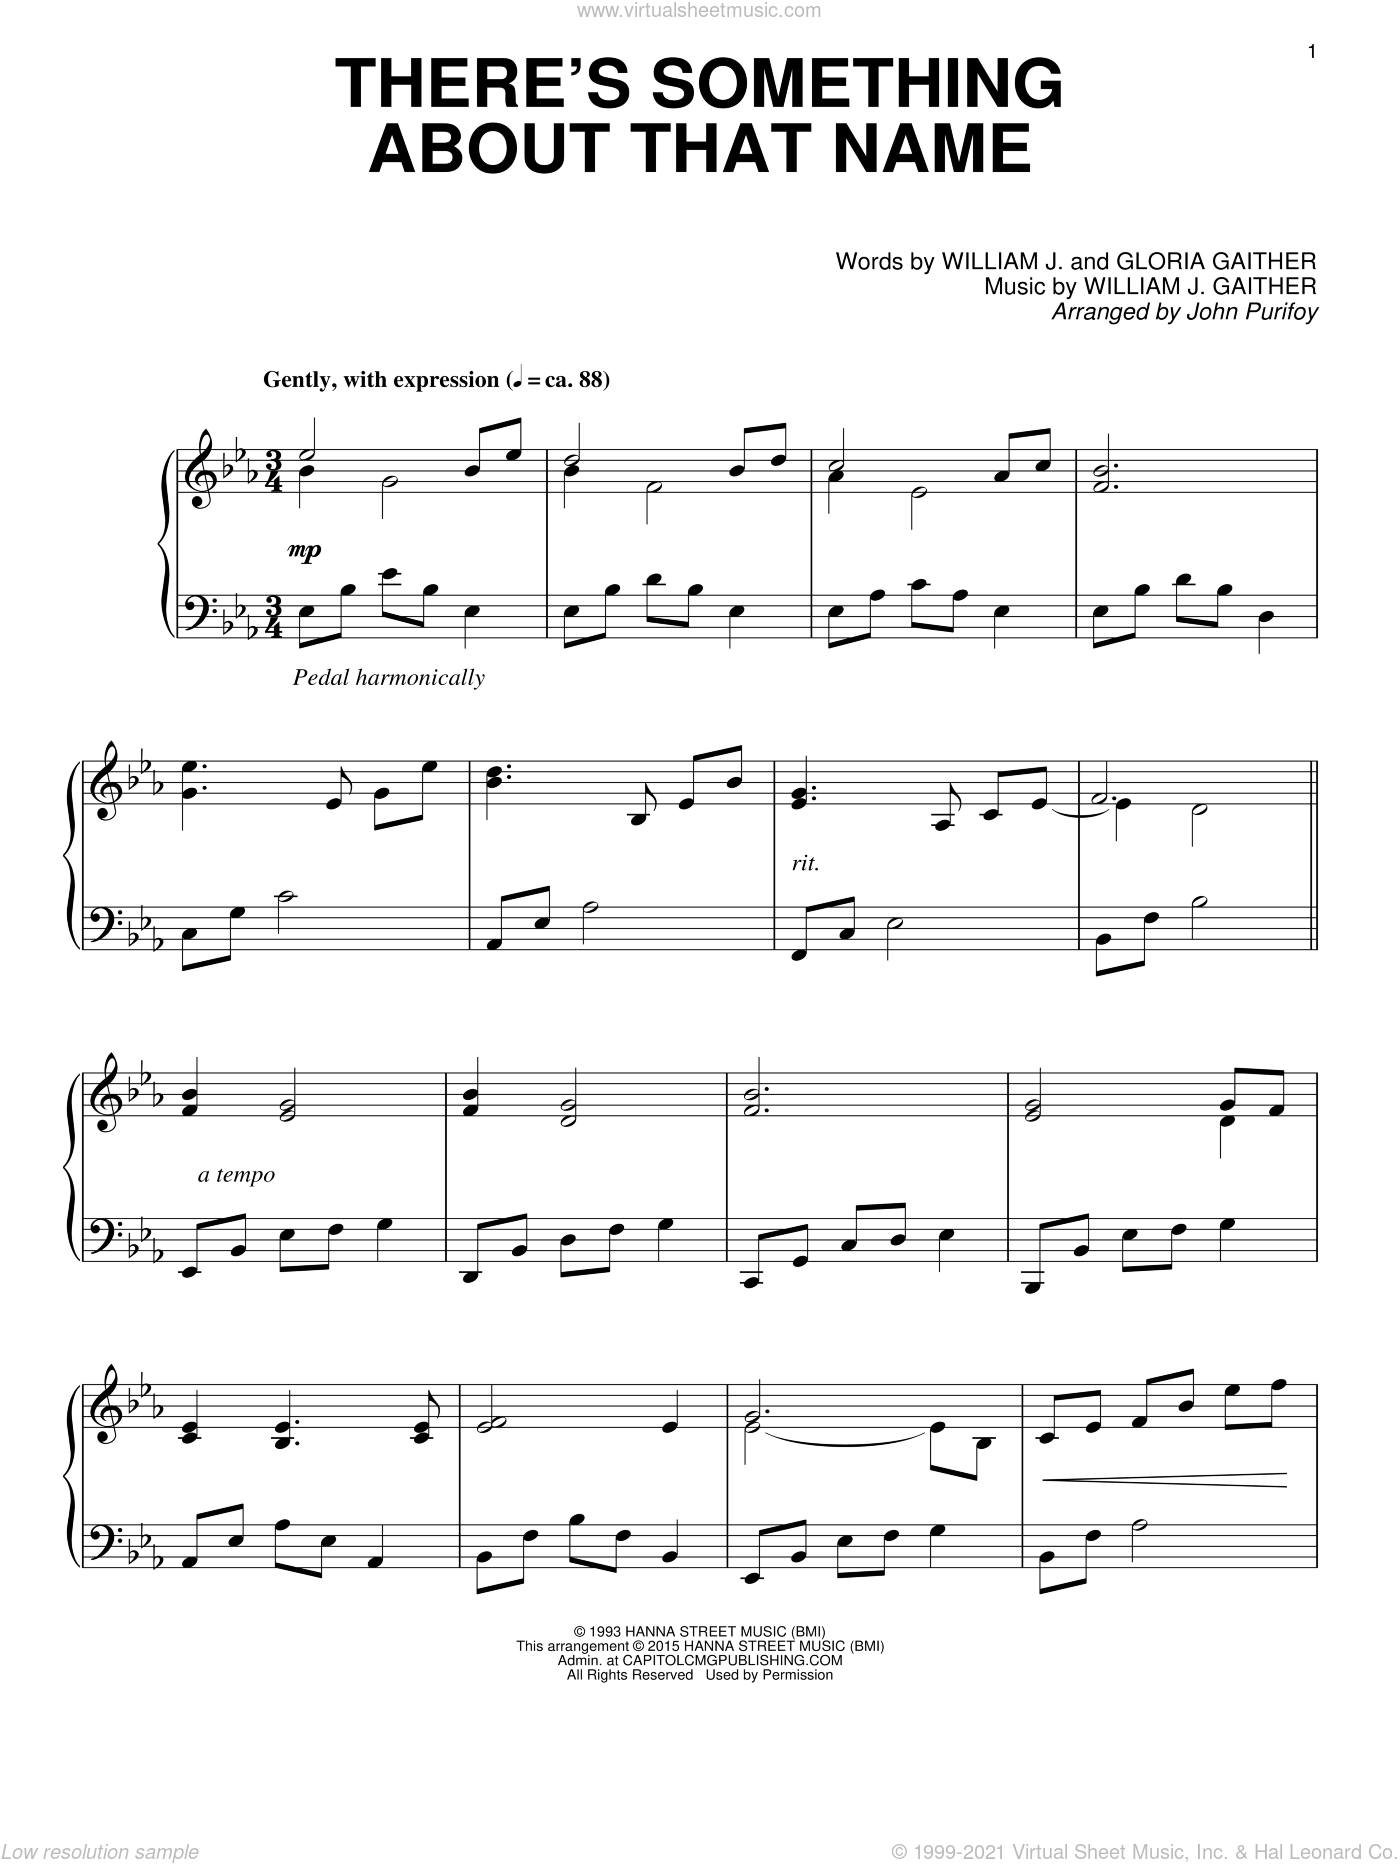 There's Something About That Name sheet music for piano solo by Gloria Gaither, John Purifoy and William J. Gaither, intermediate skill level